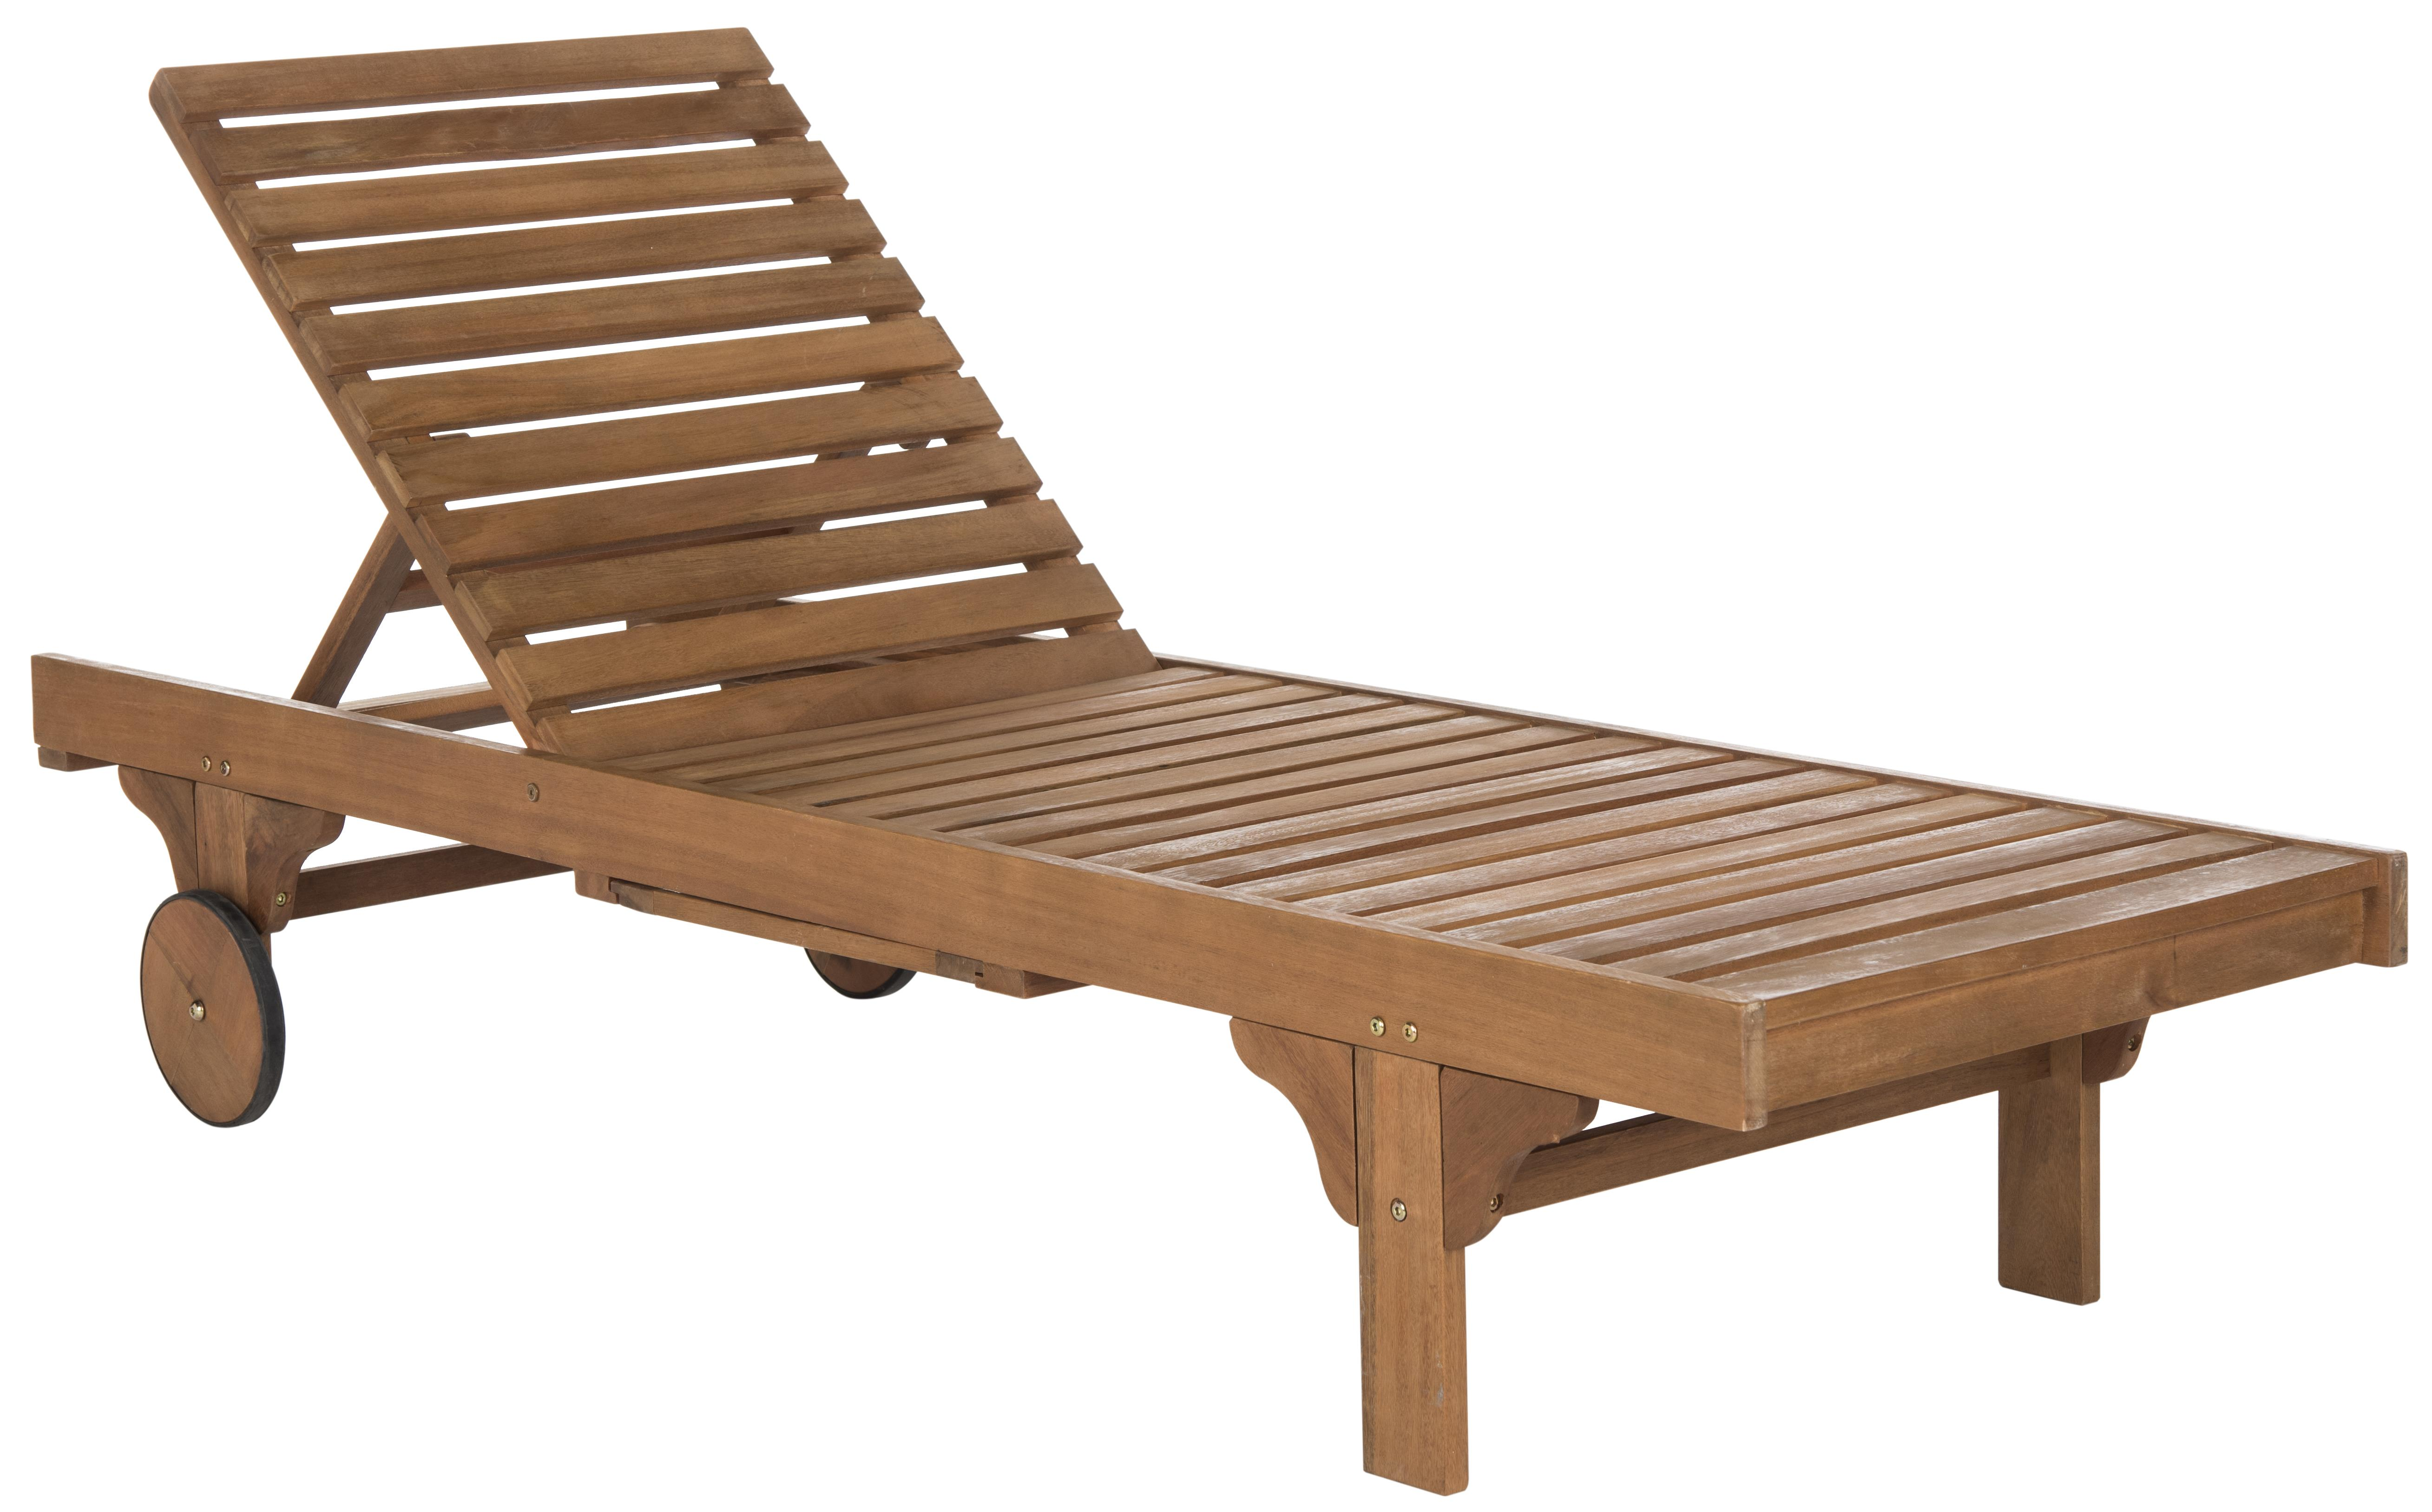 Safavieh Newport Chaise Lounge Chair With Side Table ... on Safavieh Chaise Lounge id=40344